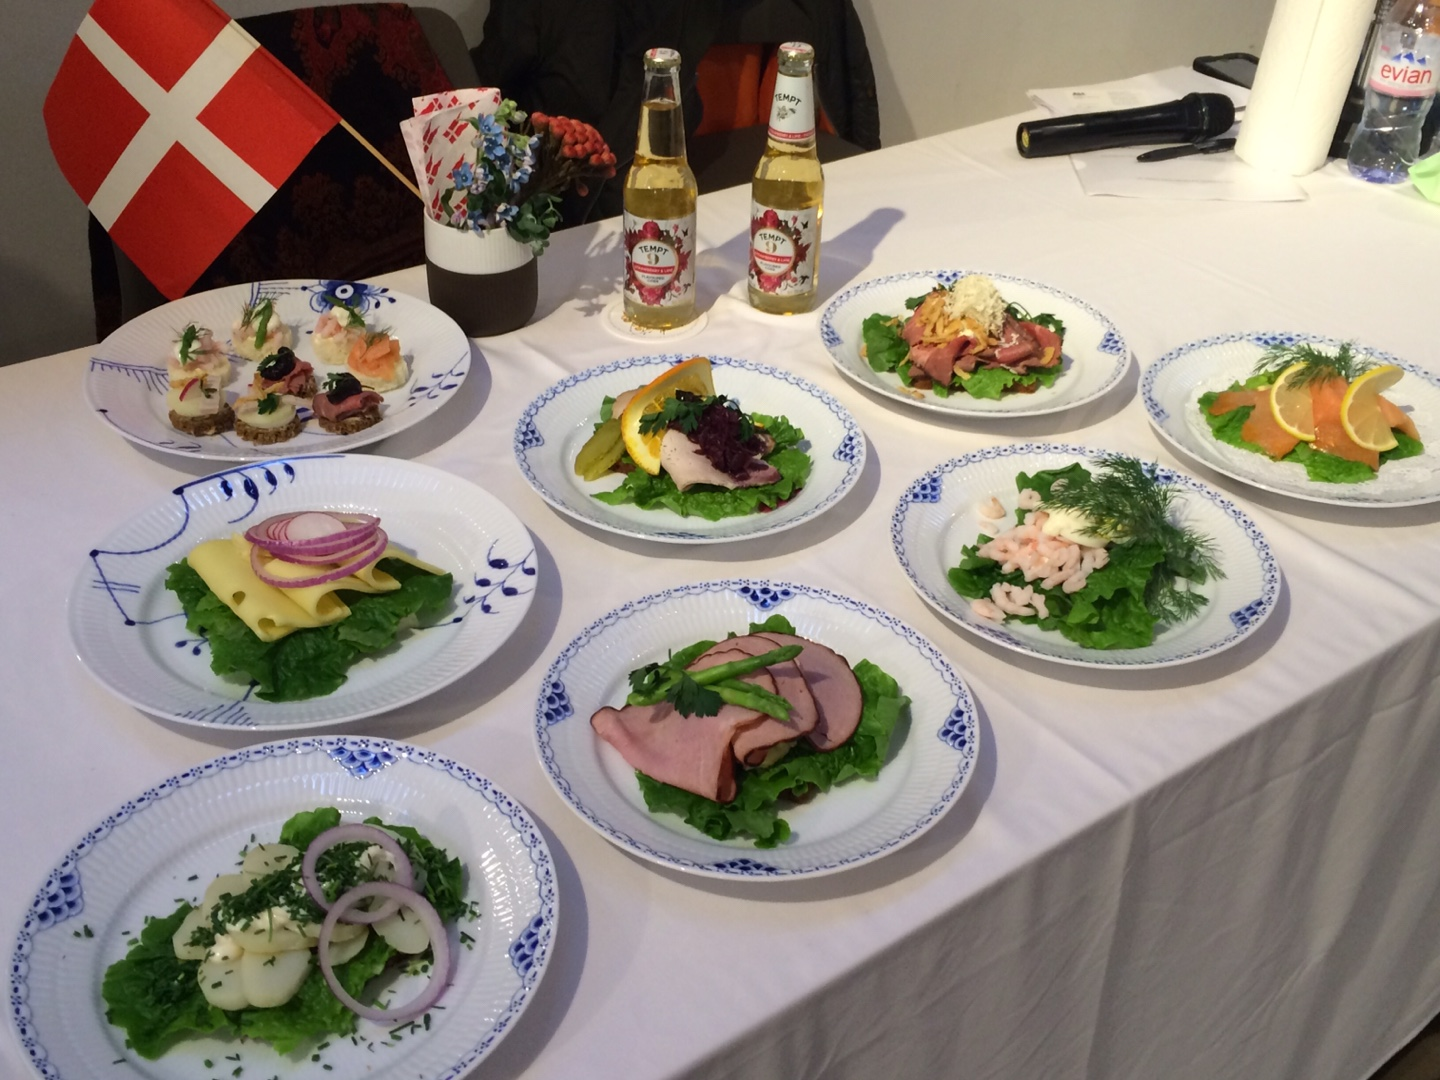 The Danish porcelain company Royal Copenhagen sponsored plates for the D PASS Danish Cooking Workshop held on Oct. 31 at the Daelim Museum in Seoul that showcased trendy Danish food, drinks and design.